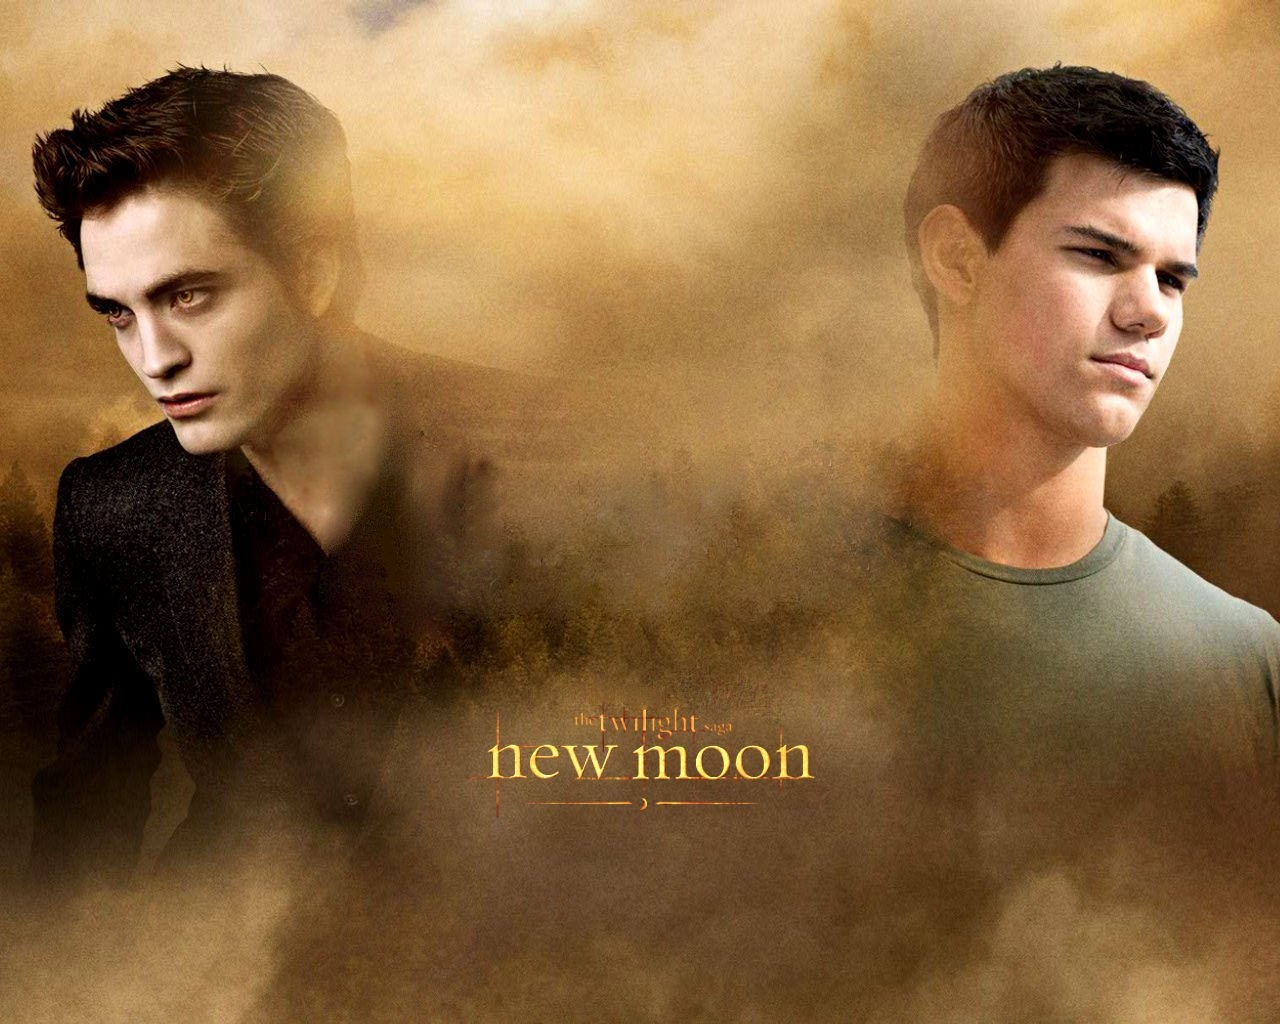 New-Moon-twilight-series-7691876-1280-1024 - сумреки обои